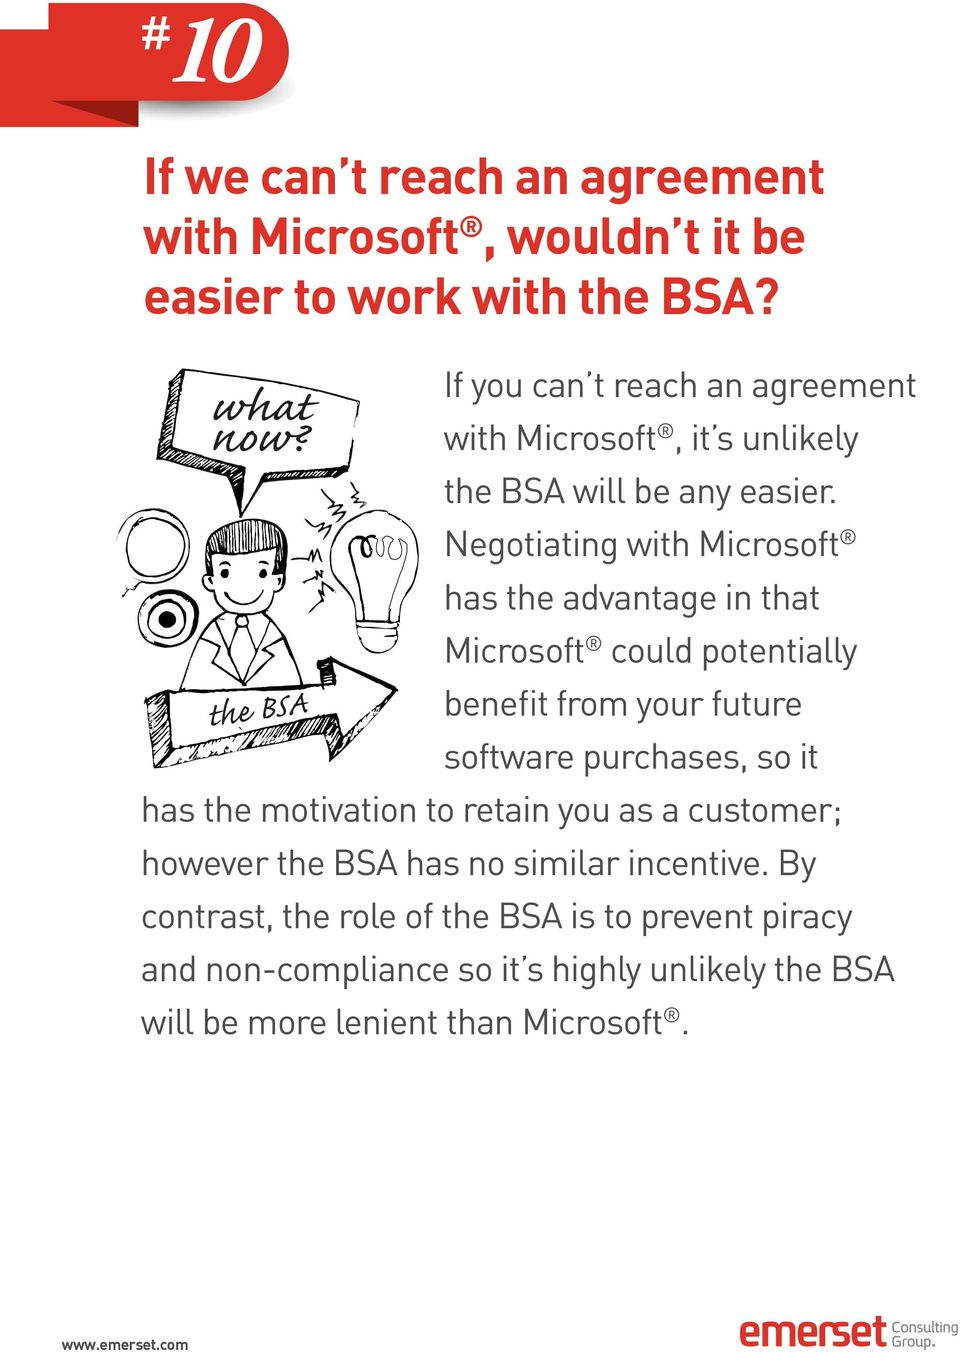 Negotiating with Microsoft has the advantage in that Microsoft could potentially benefit from your future software purchases, so it has the